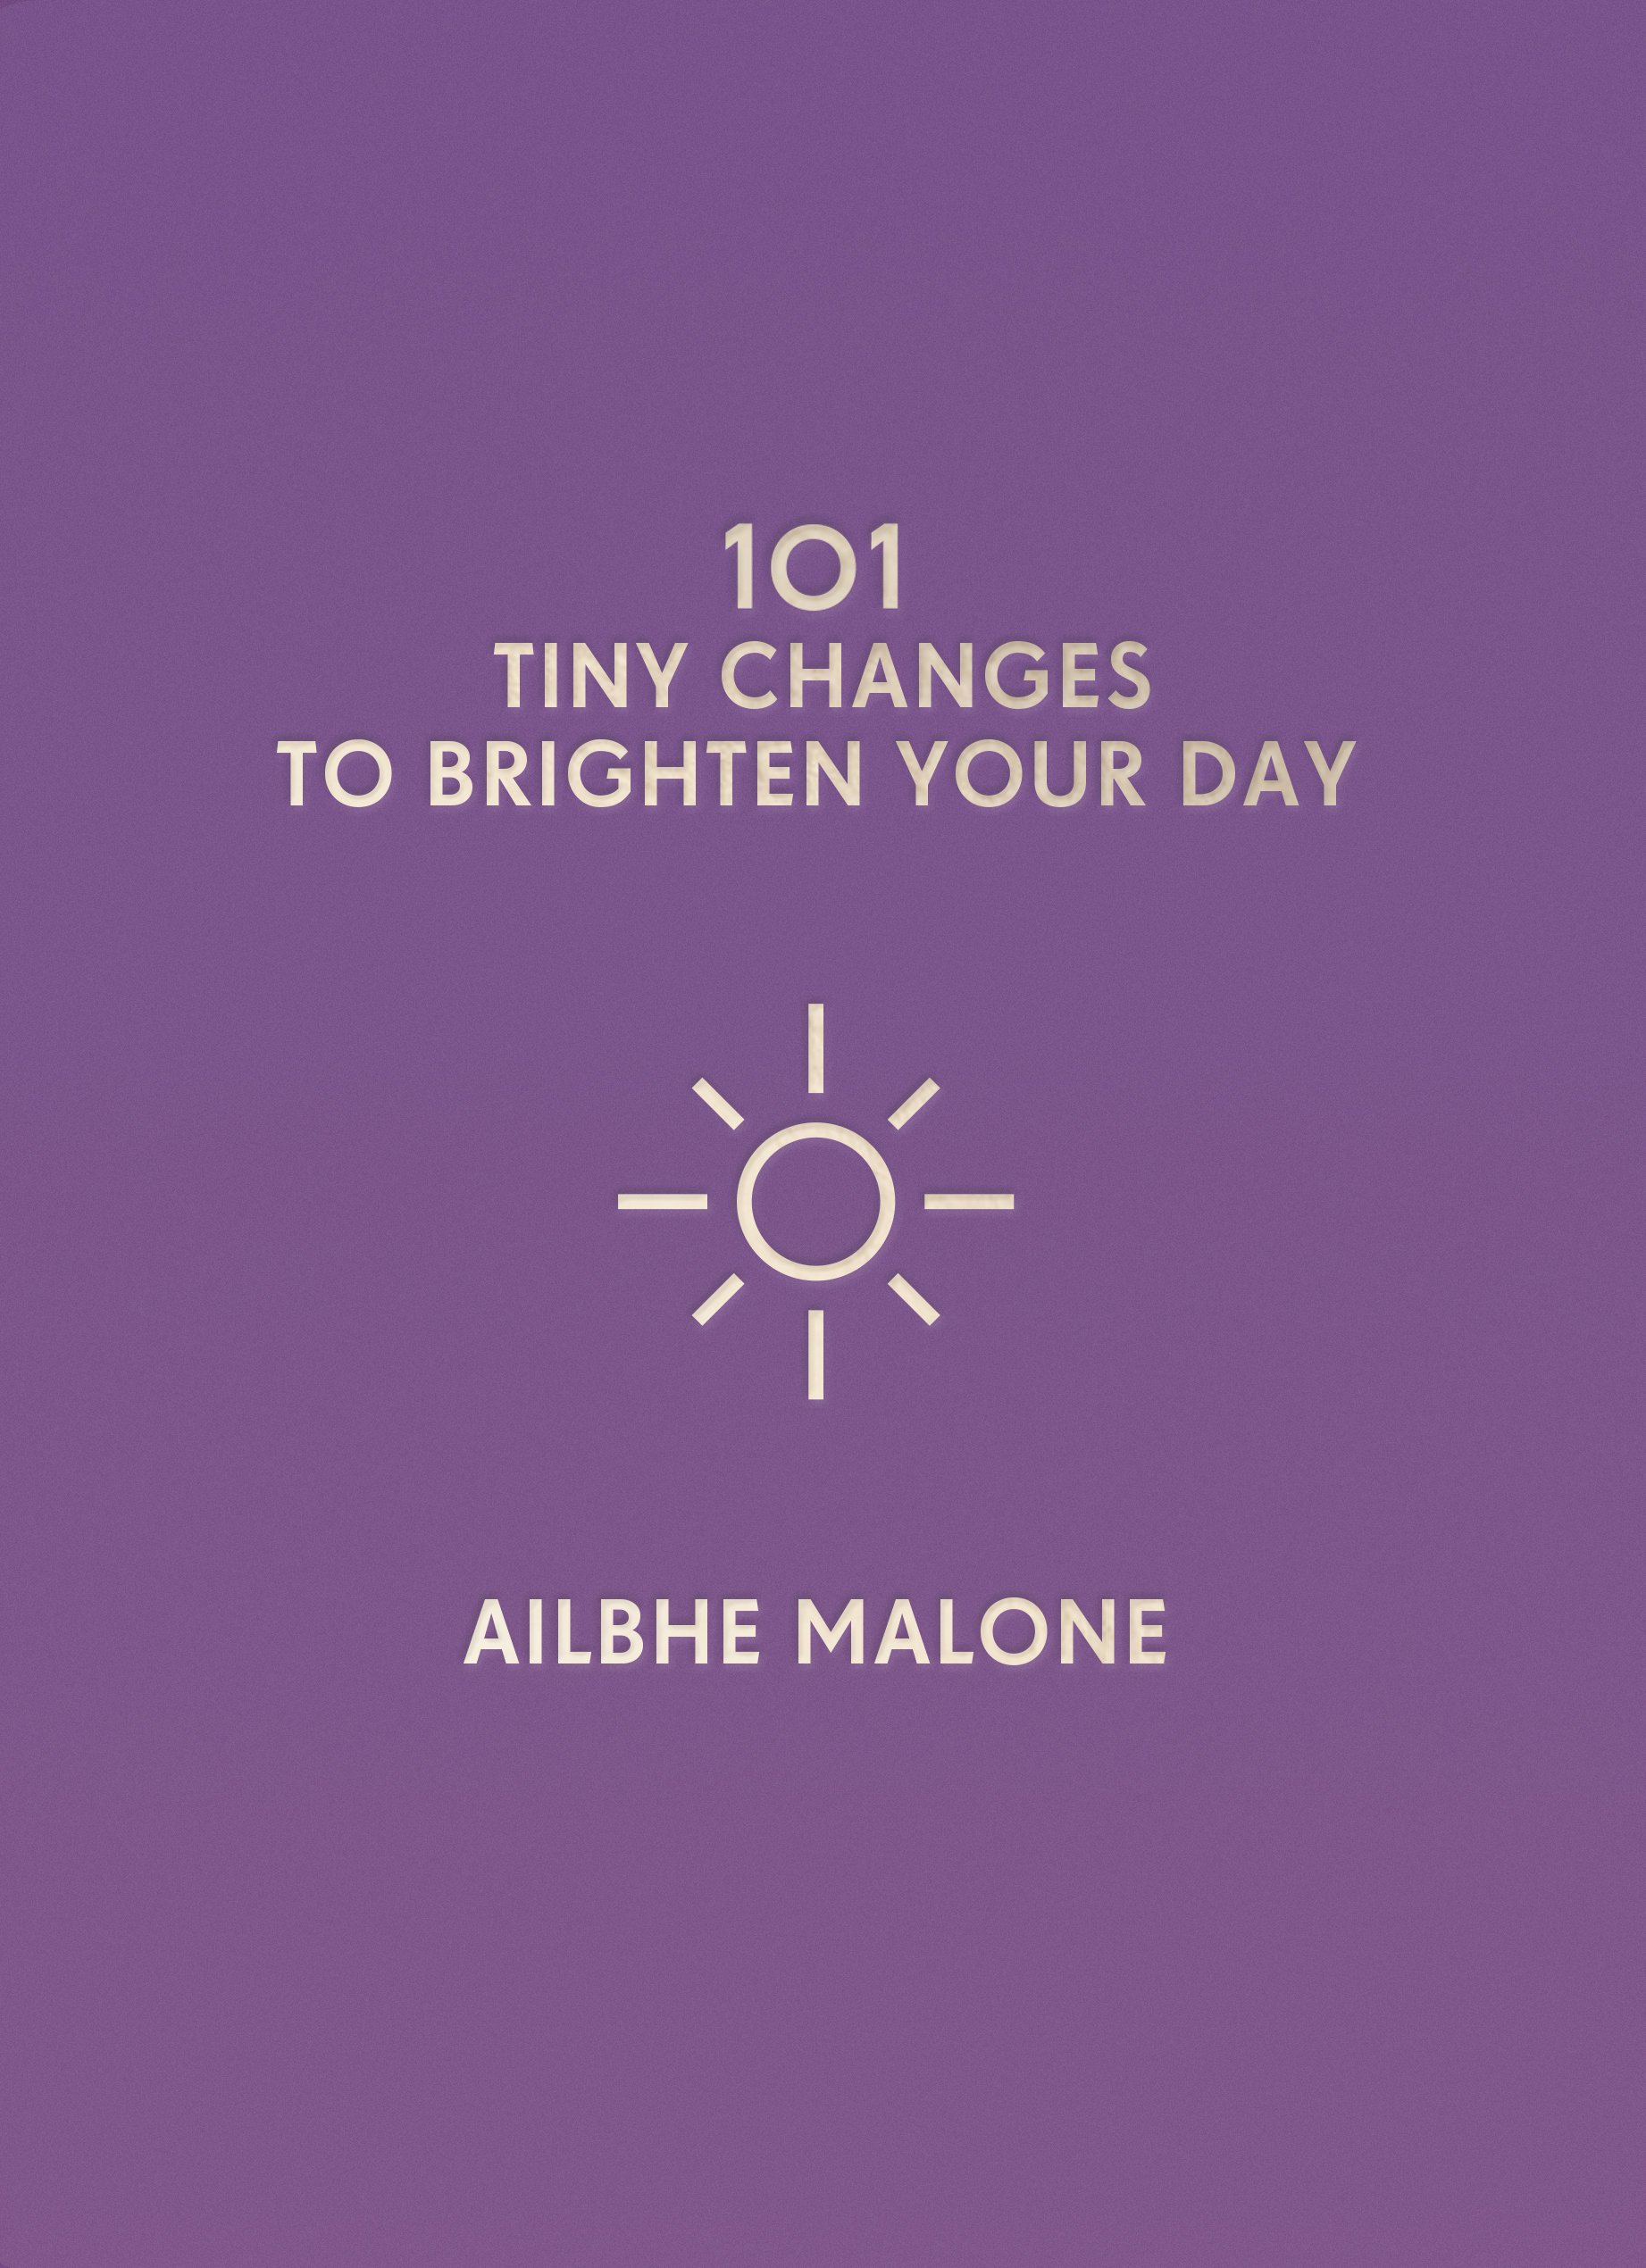 image about Design Your Day titled 101 Very little Alterations in direction of Brighten Your Working day: .united kingdom: Ailbhe